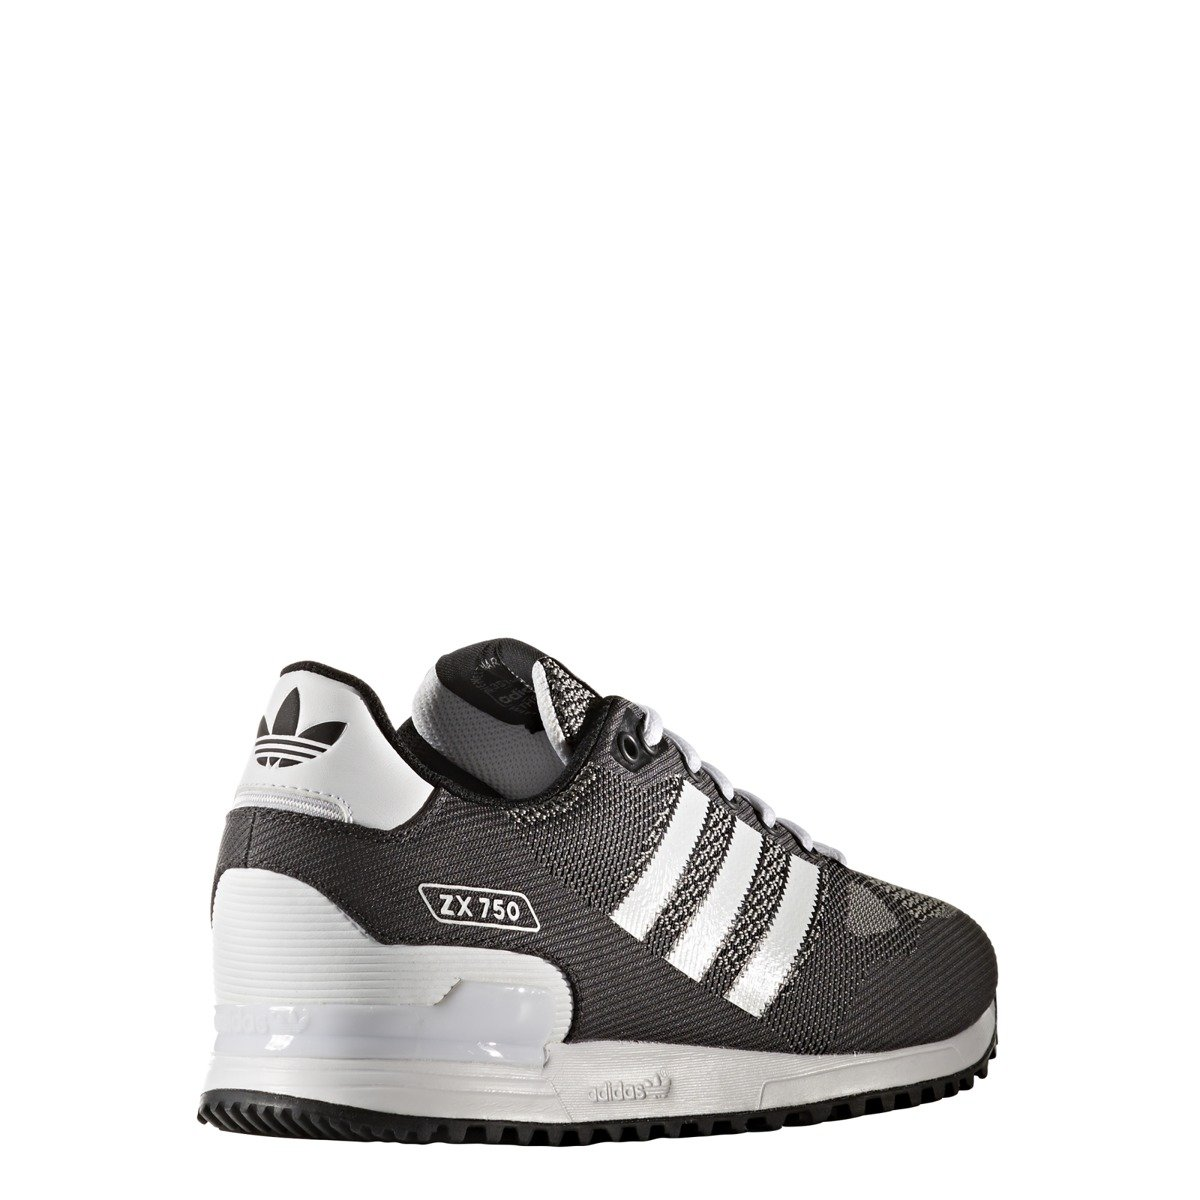 differently 5bca7 2c2f6 ... buy adidas zx 750 black red white sklep online materace dmuchane 787e7  5db22